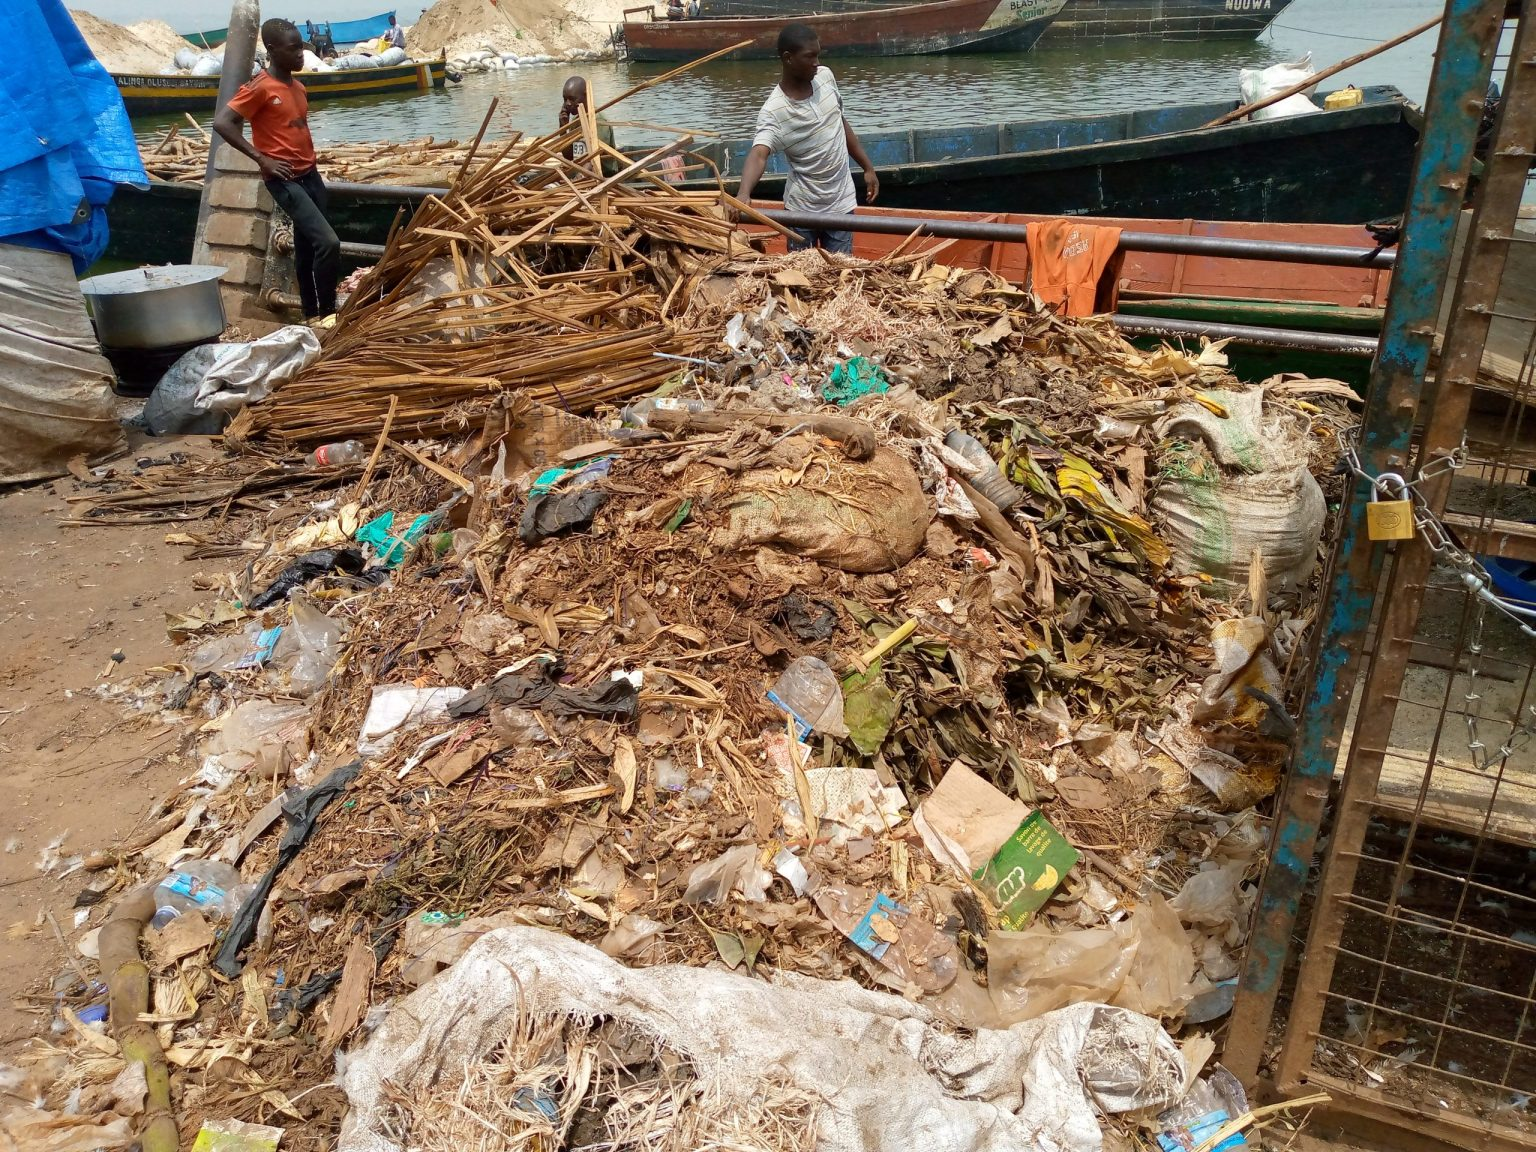 Plastic Pollution of Lake Victoria in Uganda: Who is to Blame?